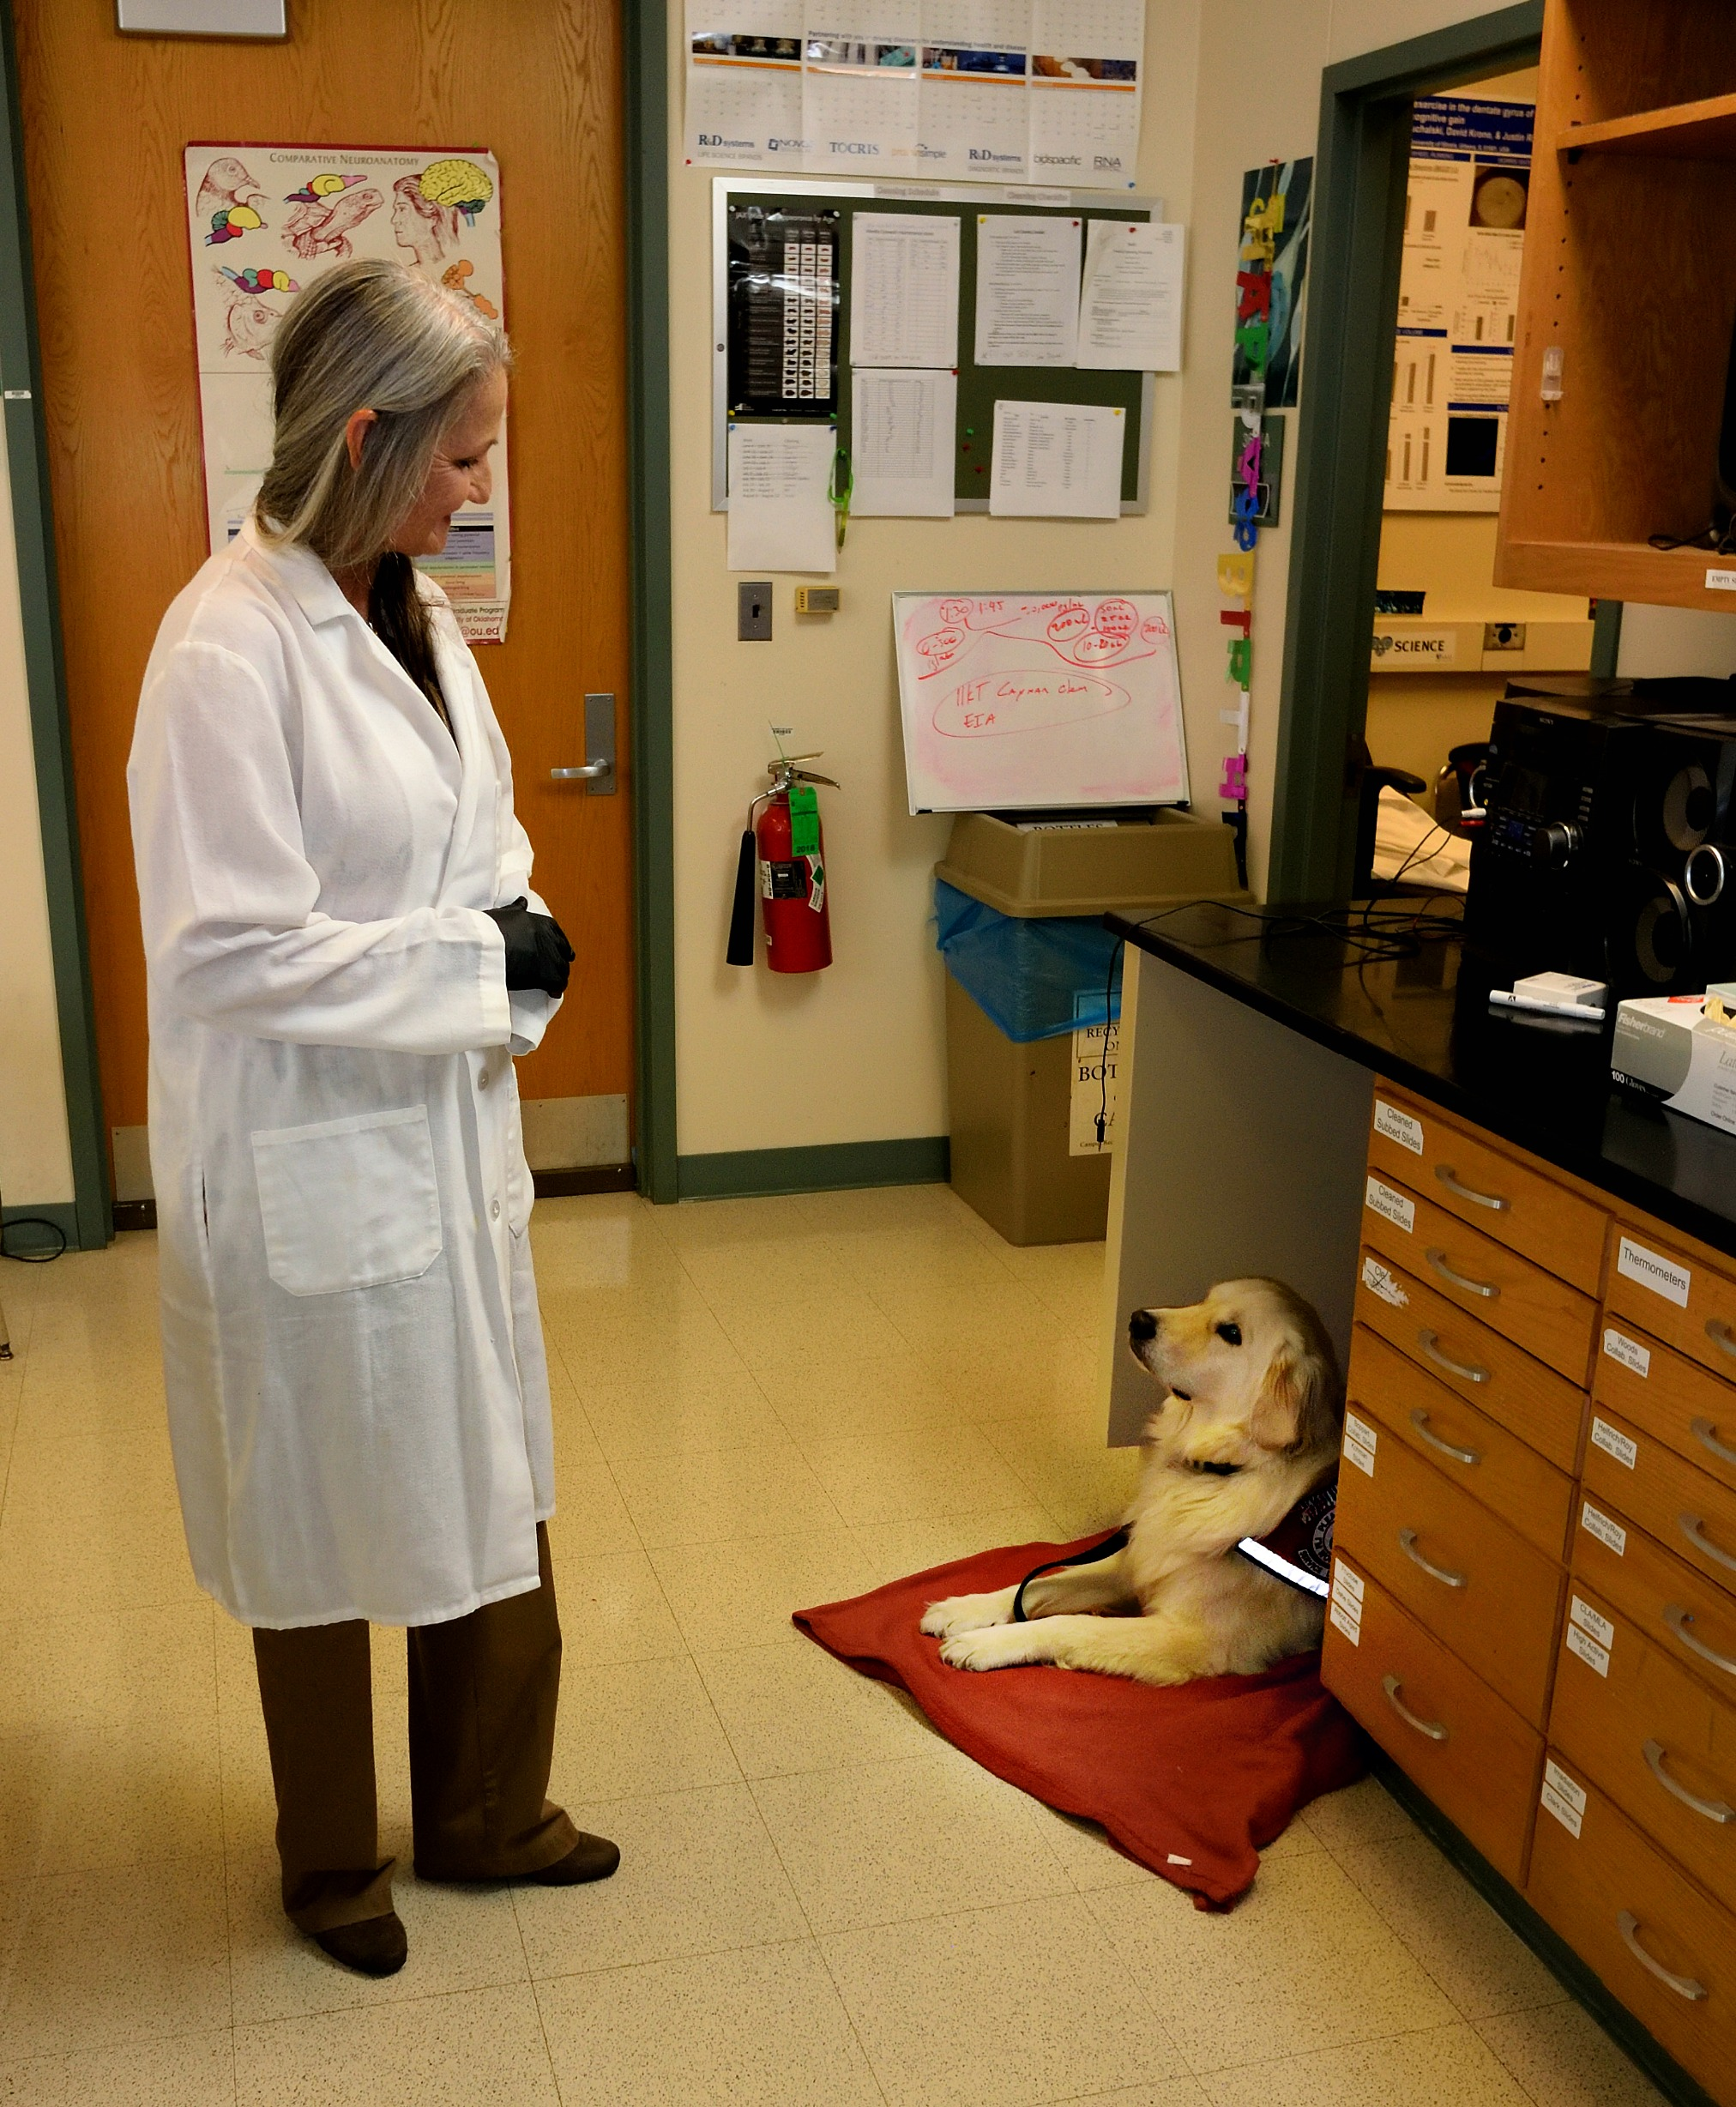 The challenges of bringing service dogs into the lab the scientist ramp and her current service dog sampson in justin rhodess lab at the beckman institute for advanced science and technology at the university of illinois fandeluxe Image collections